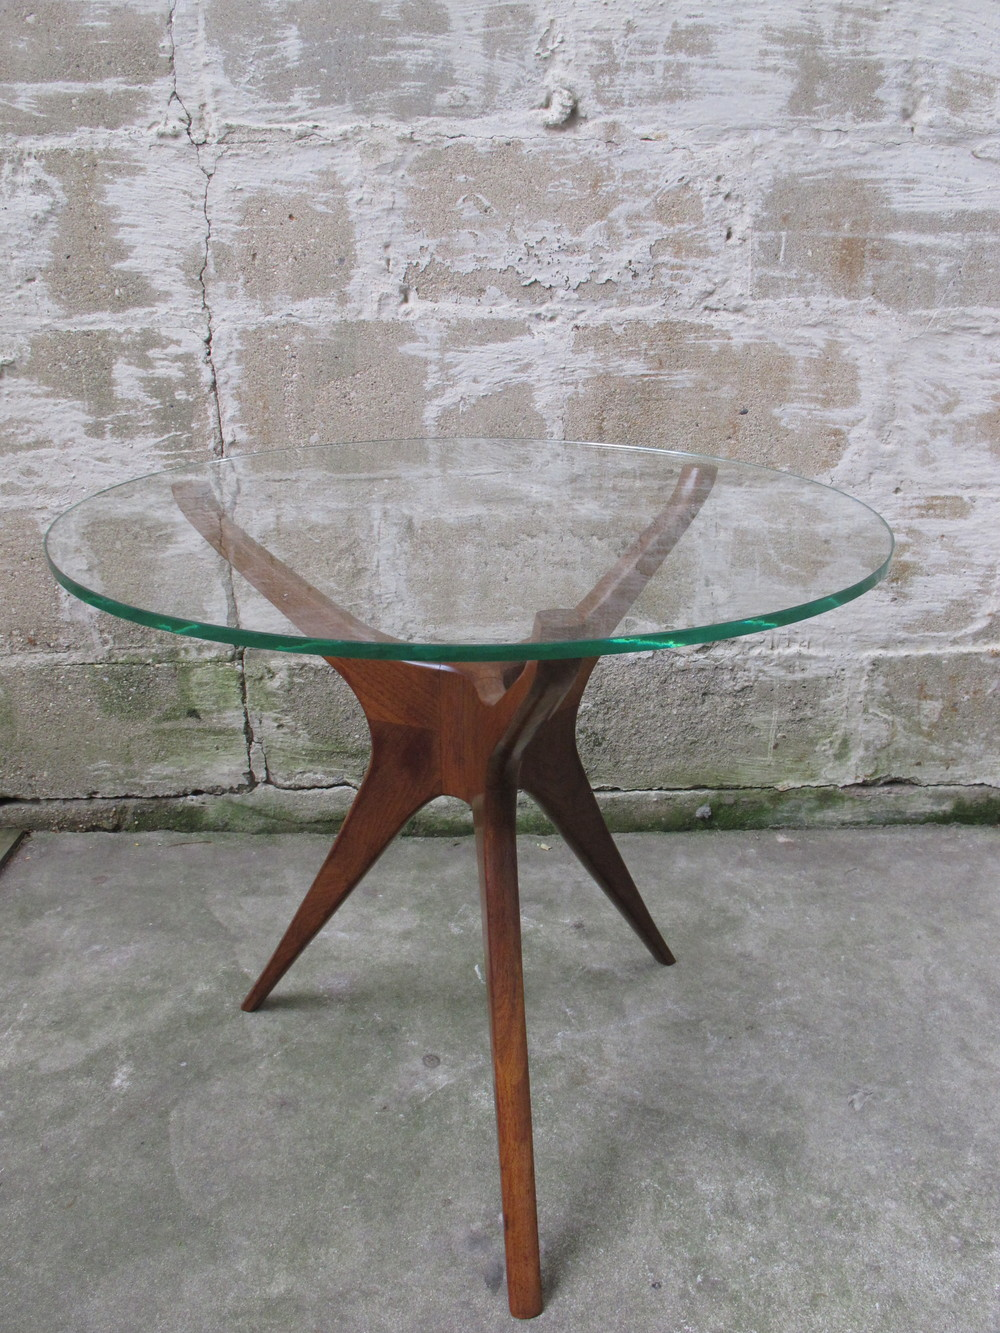 KAGAN STYLE MID CENTURY WALNUT & GLASS SIDE TABLE